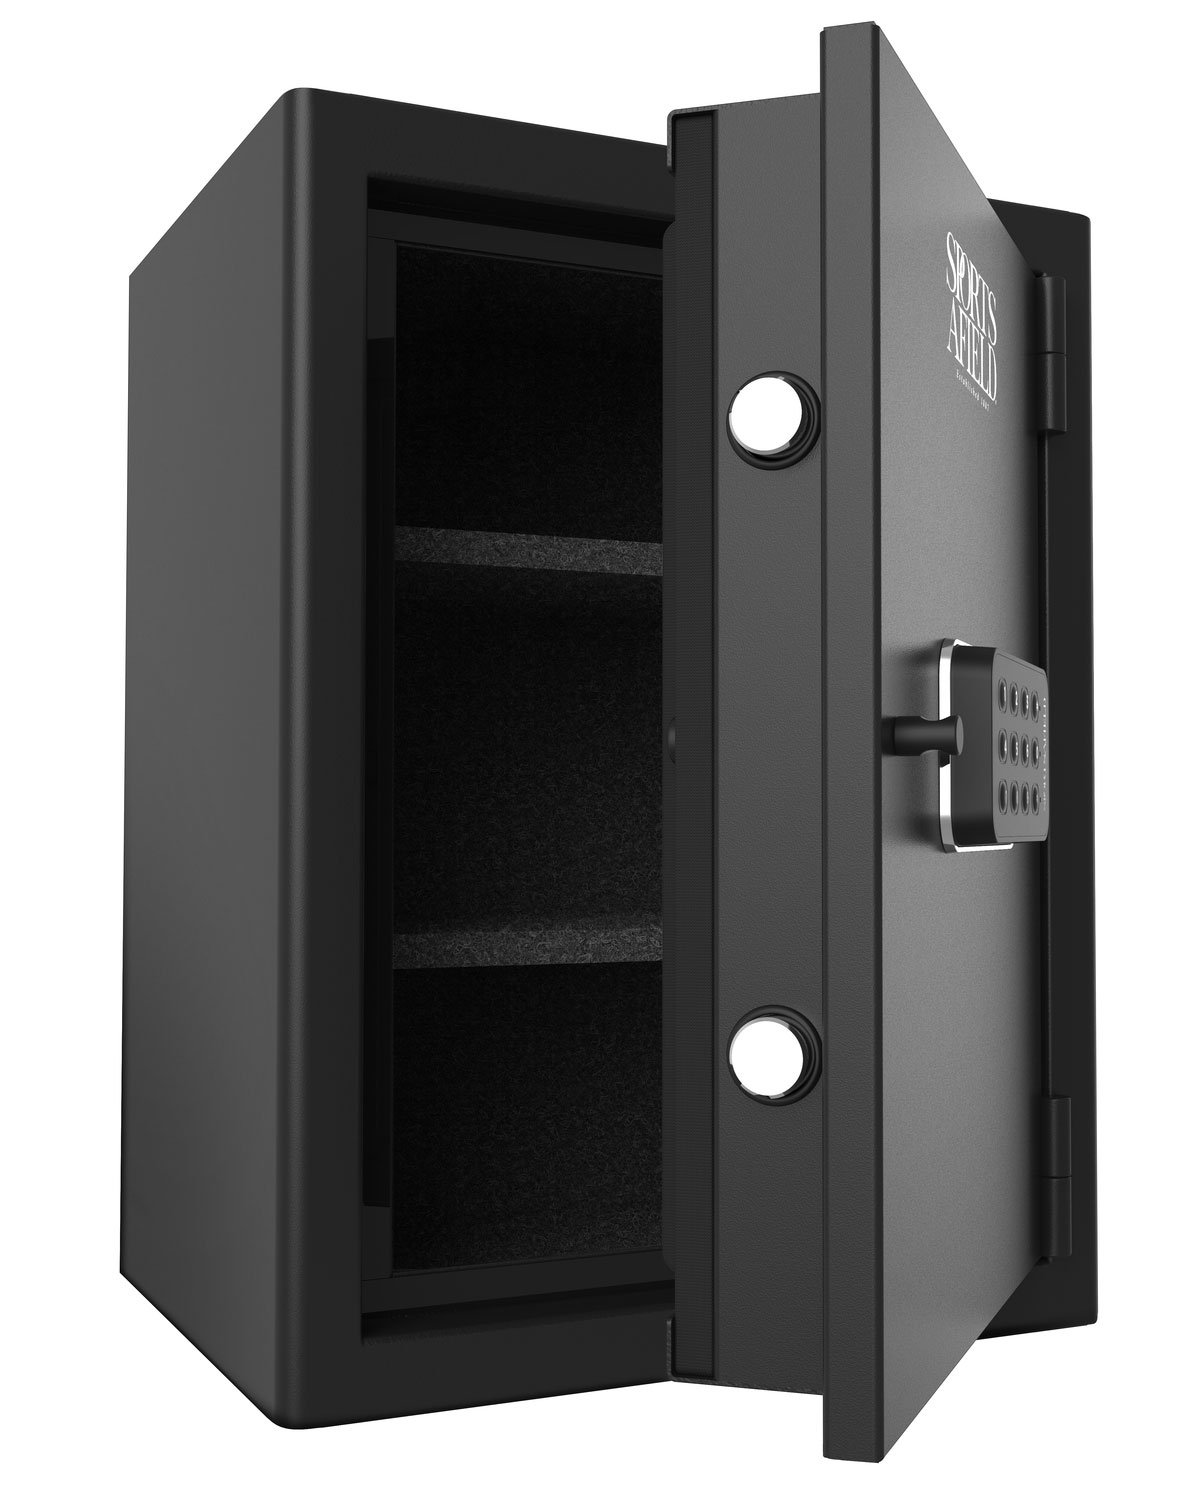 Sports Afield SA-ES02 Home and Office Fire Safe, 20 x 15